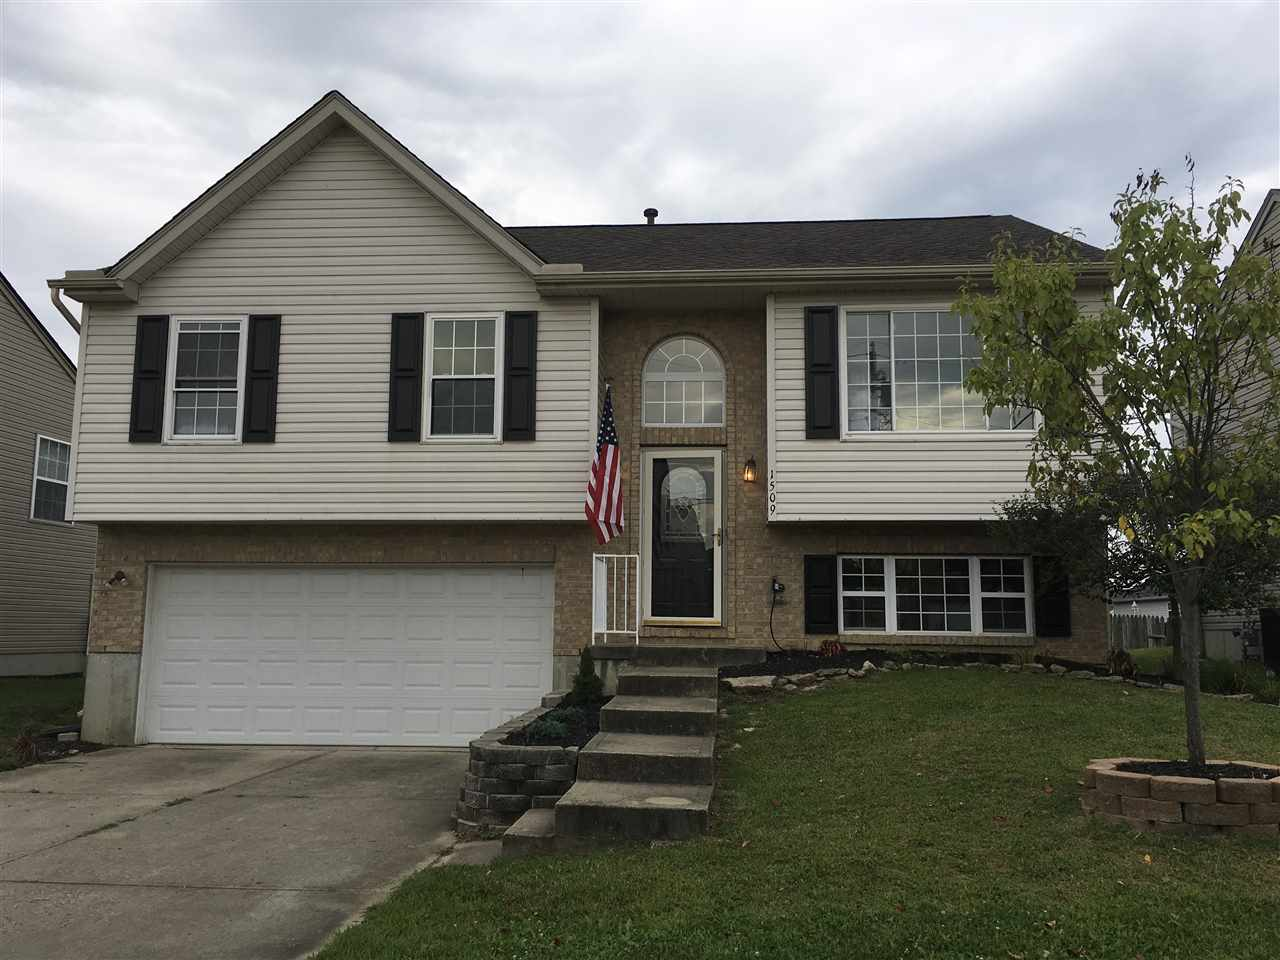 Photo 1 for 1509 Clovernook Dr Elsmere, KY 41018